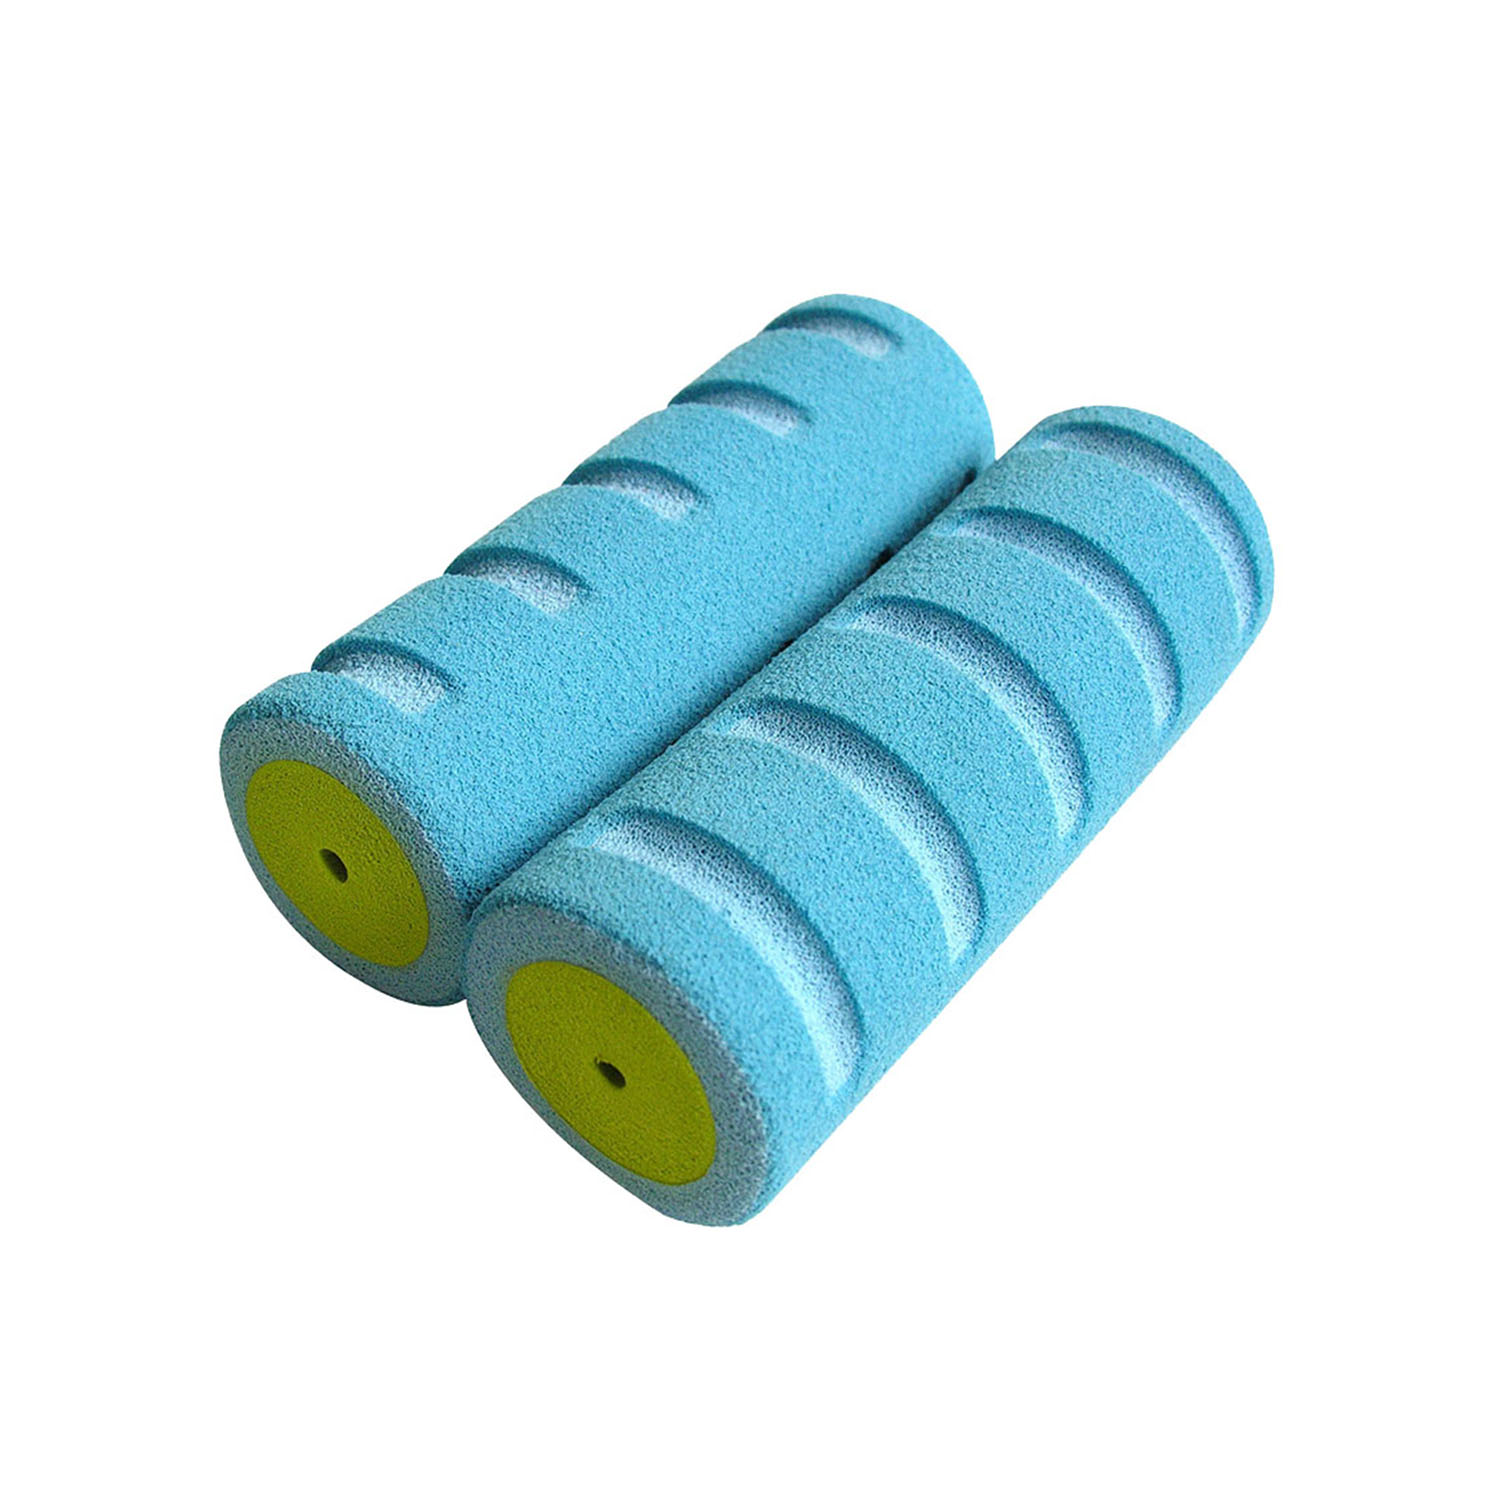 SQUEEZER DUMBBELLS